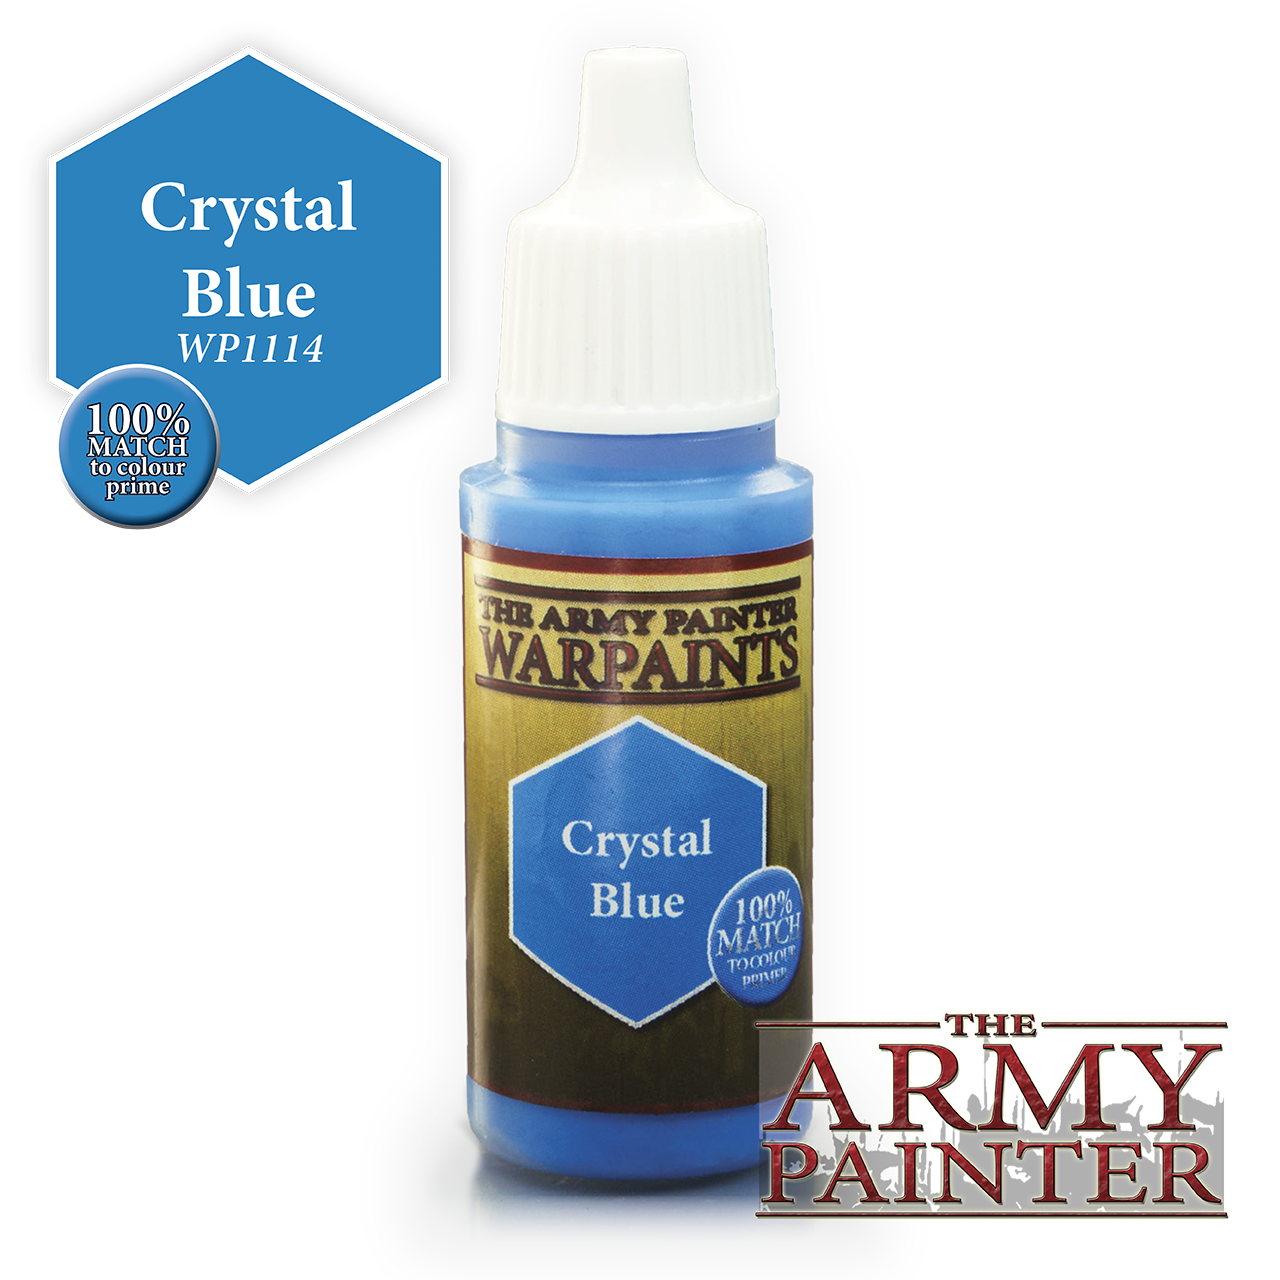 The Army Painter Warpaints: Crystal Blue (18ml)